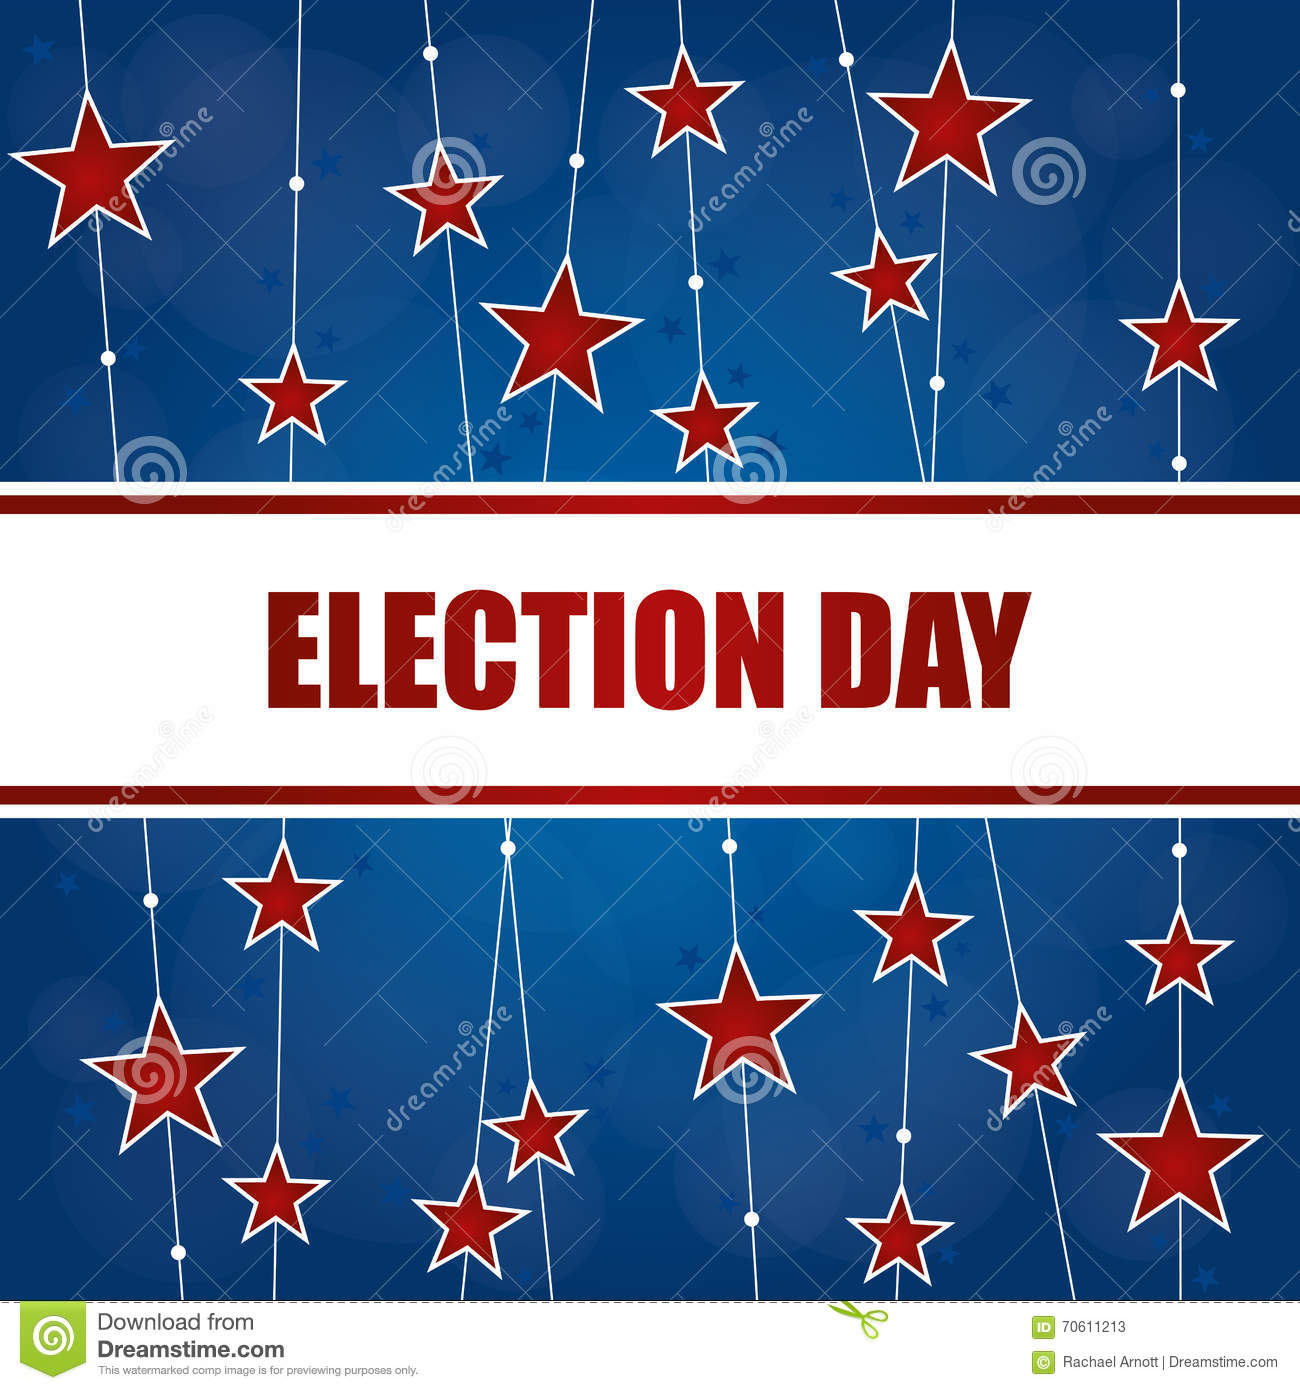 What date is election day in Melbourne